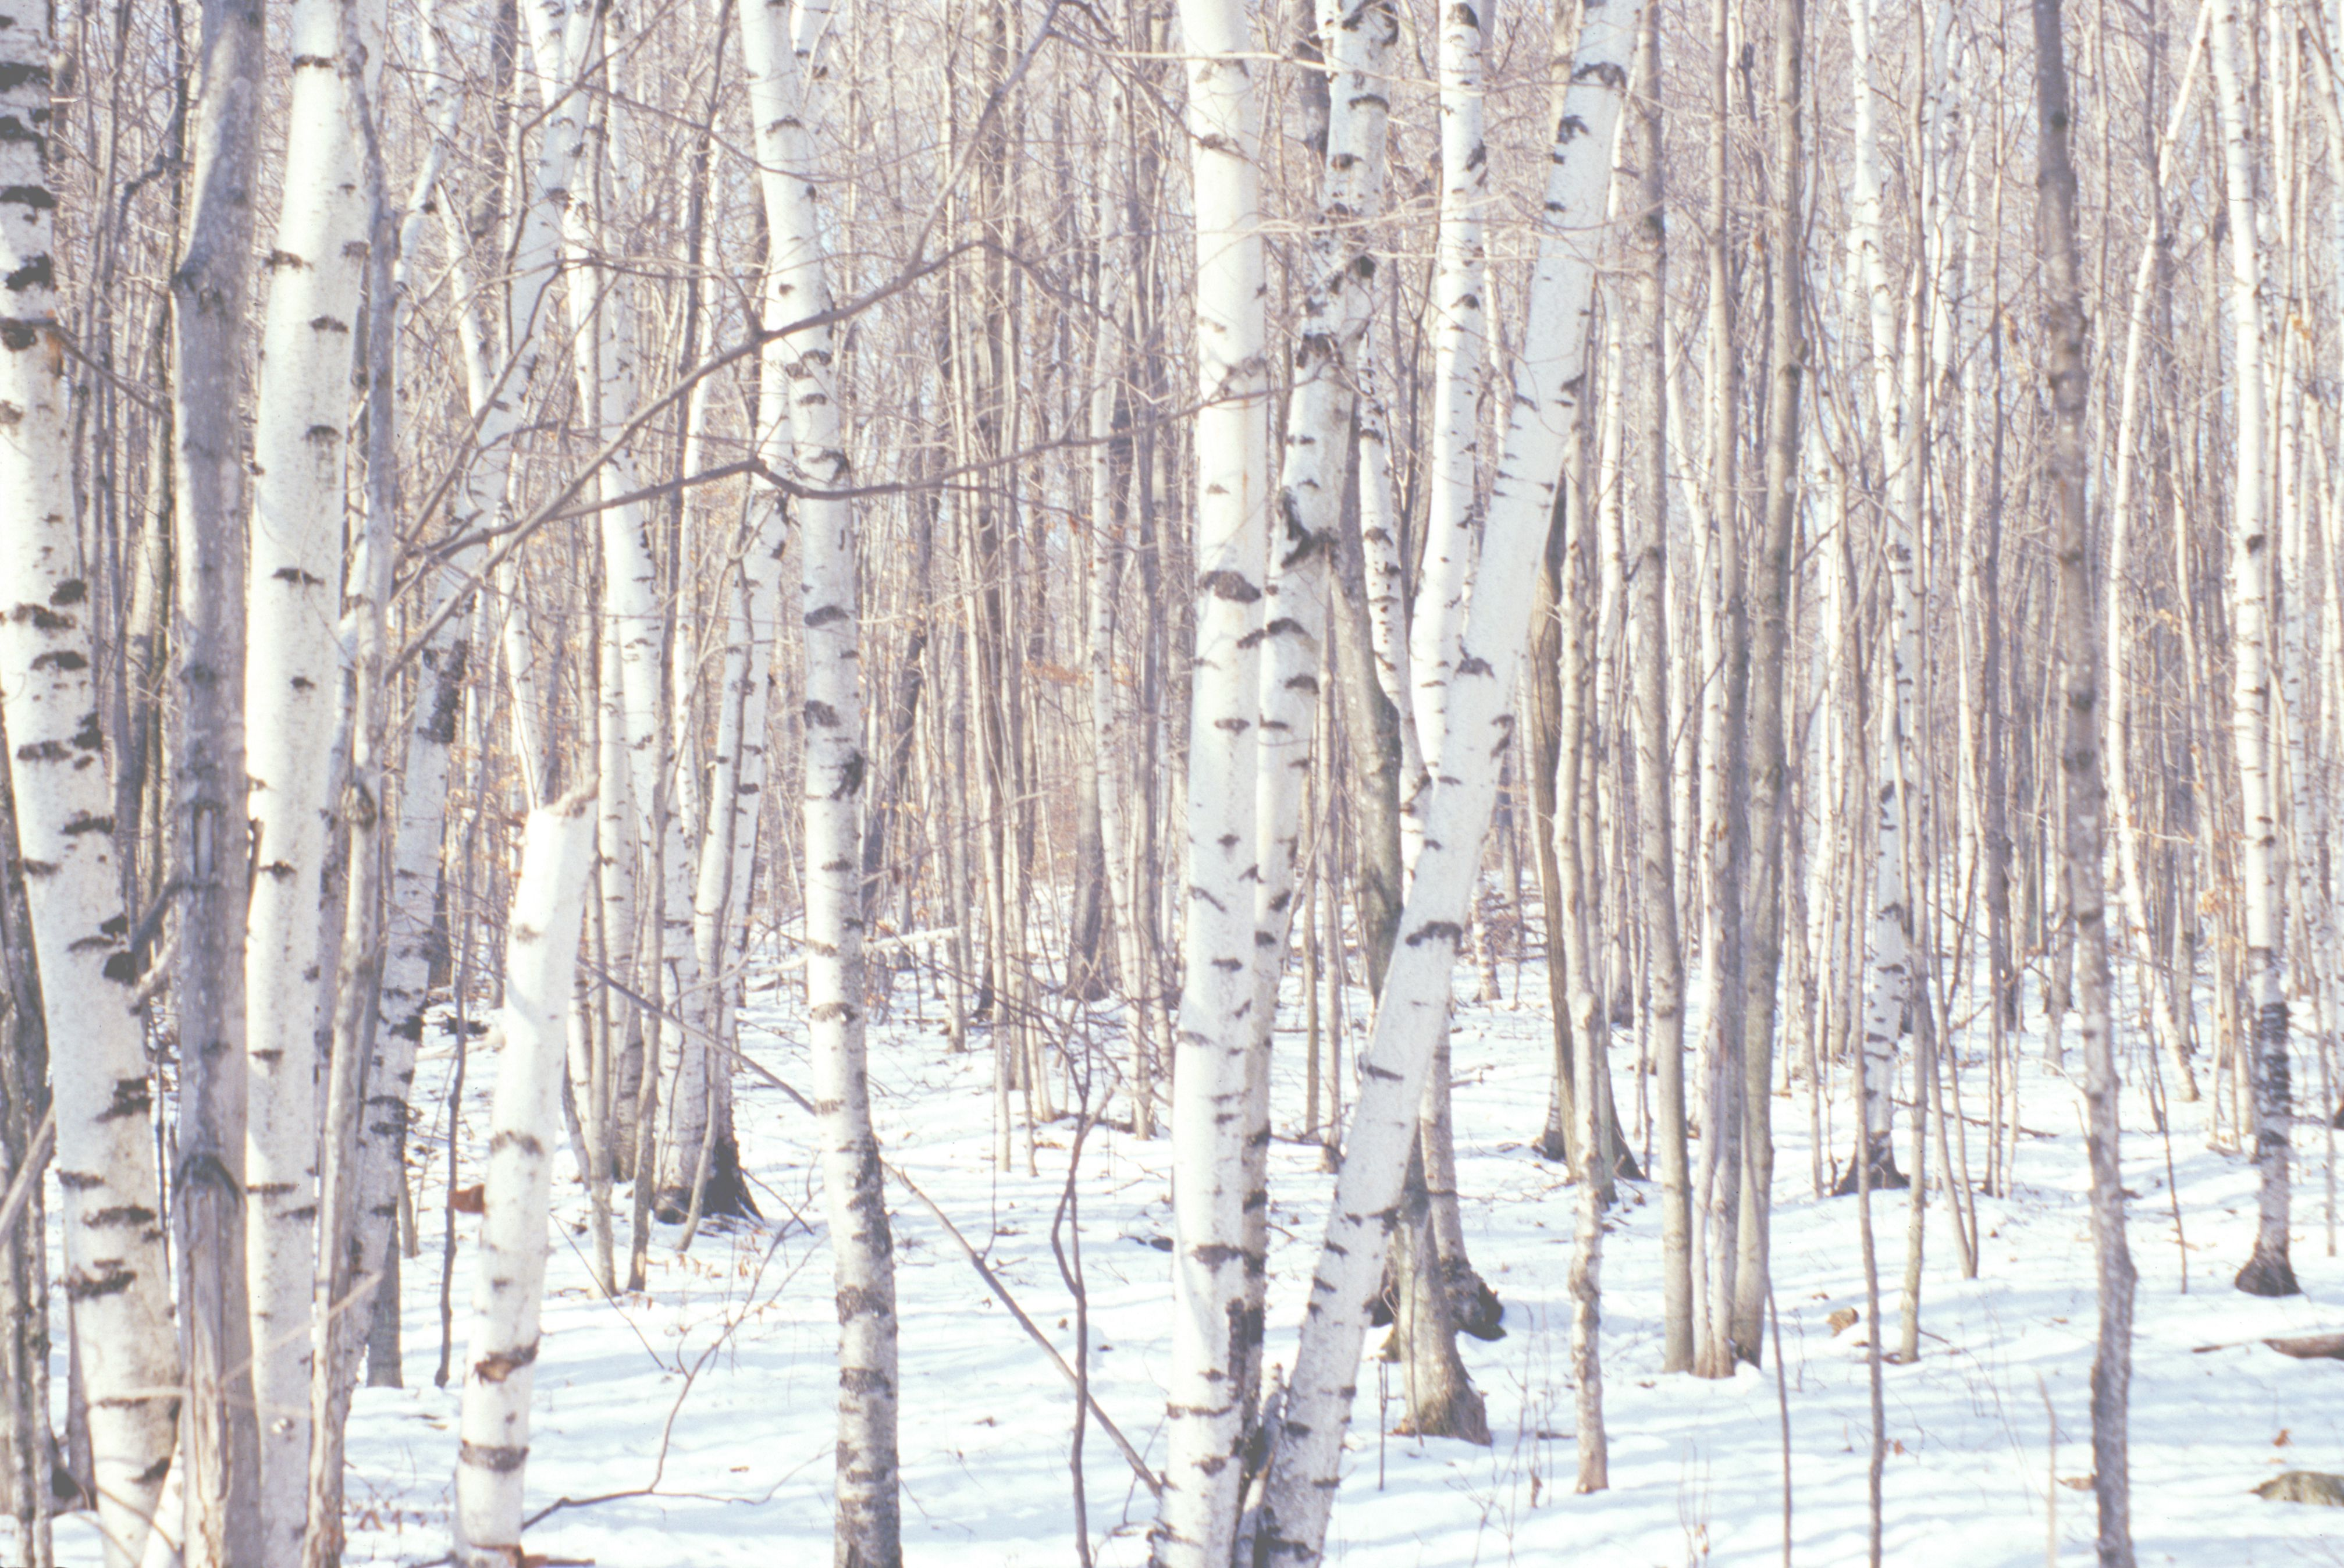 Grove of birch trees and snow